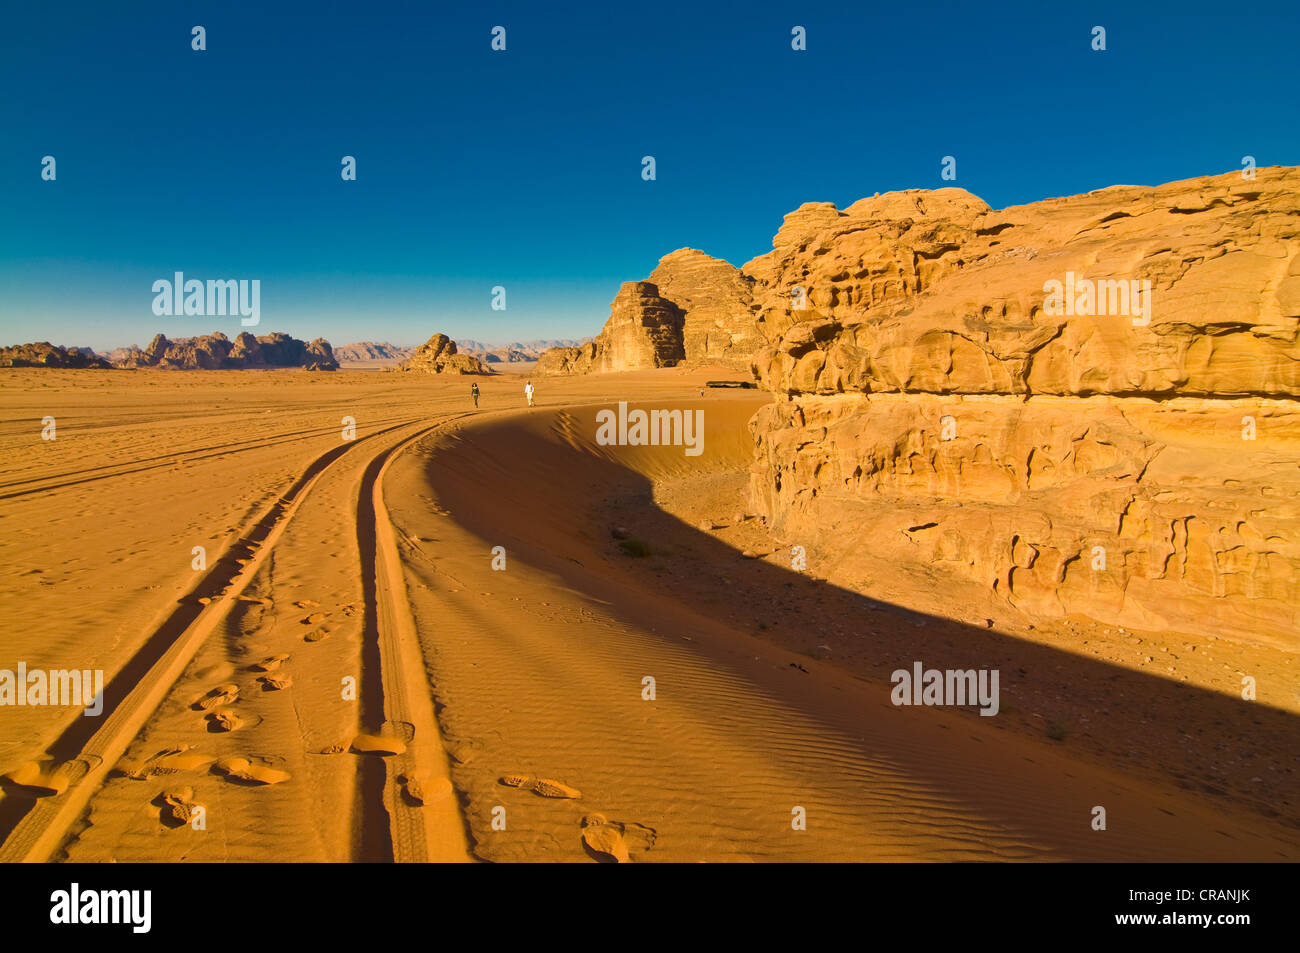 Mountains and desert, Wadi Rum, Jordan, Middle East - Stock Image